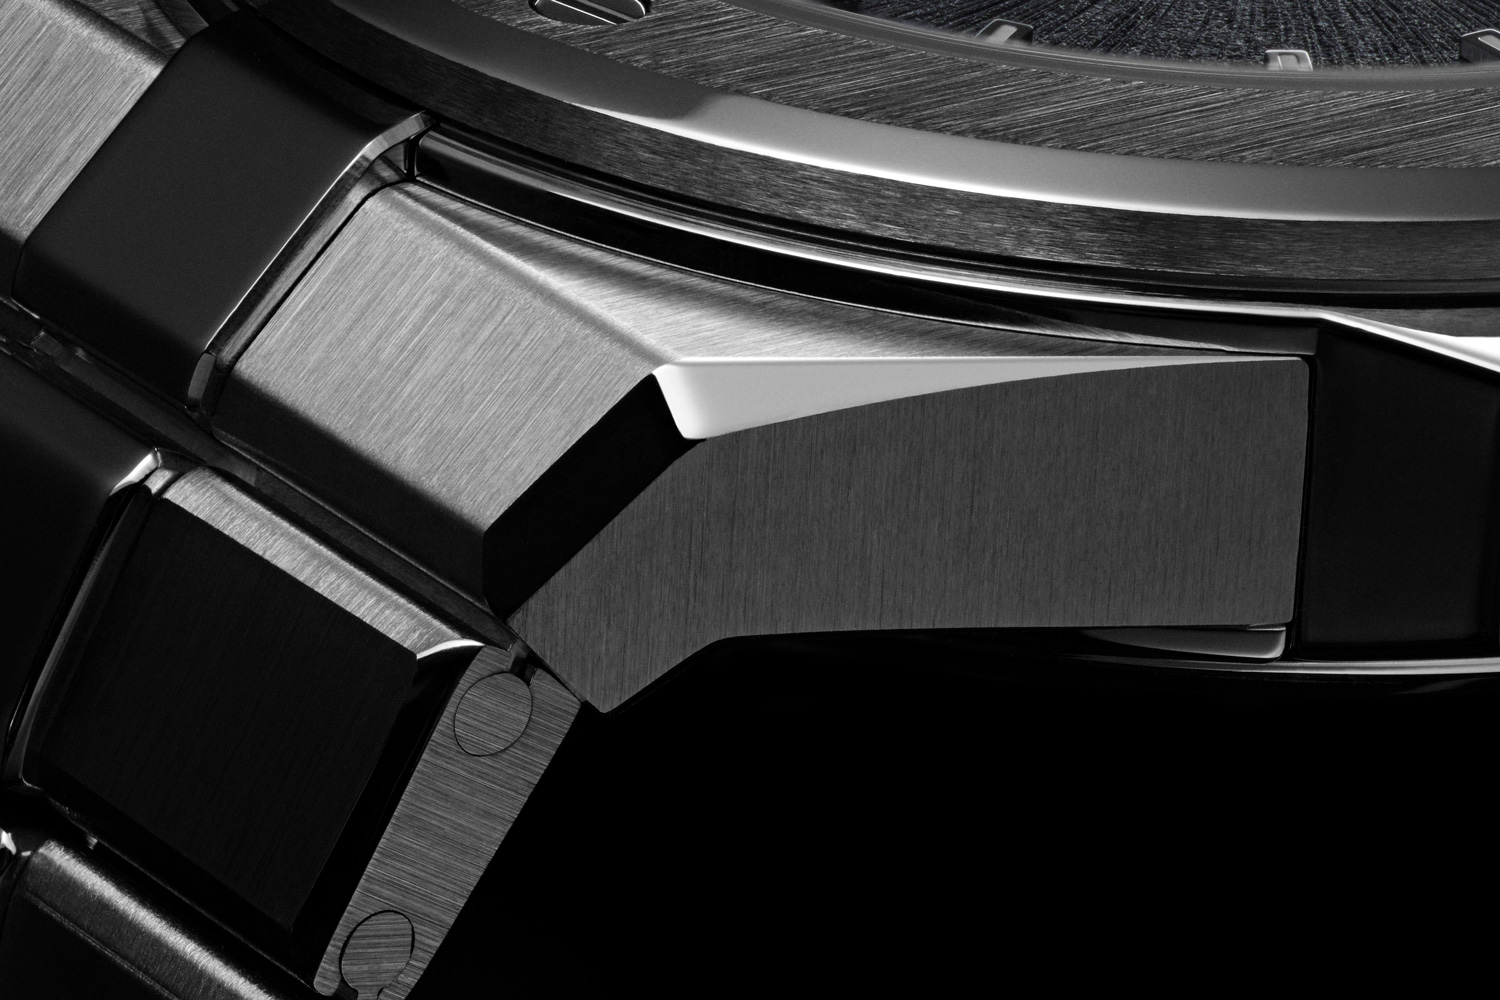 Unlike some of the older integrated bracelet watch designs, the Alpine Eagle's bracelet falls straight down against the wrist and can accommodate a vast variety of wrist sizes.